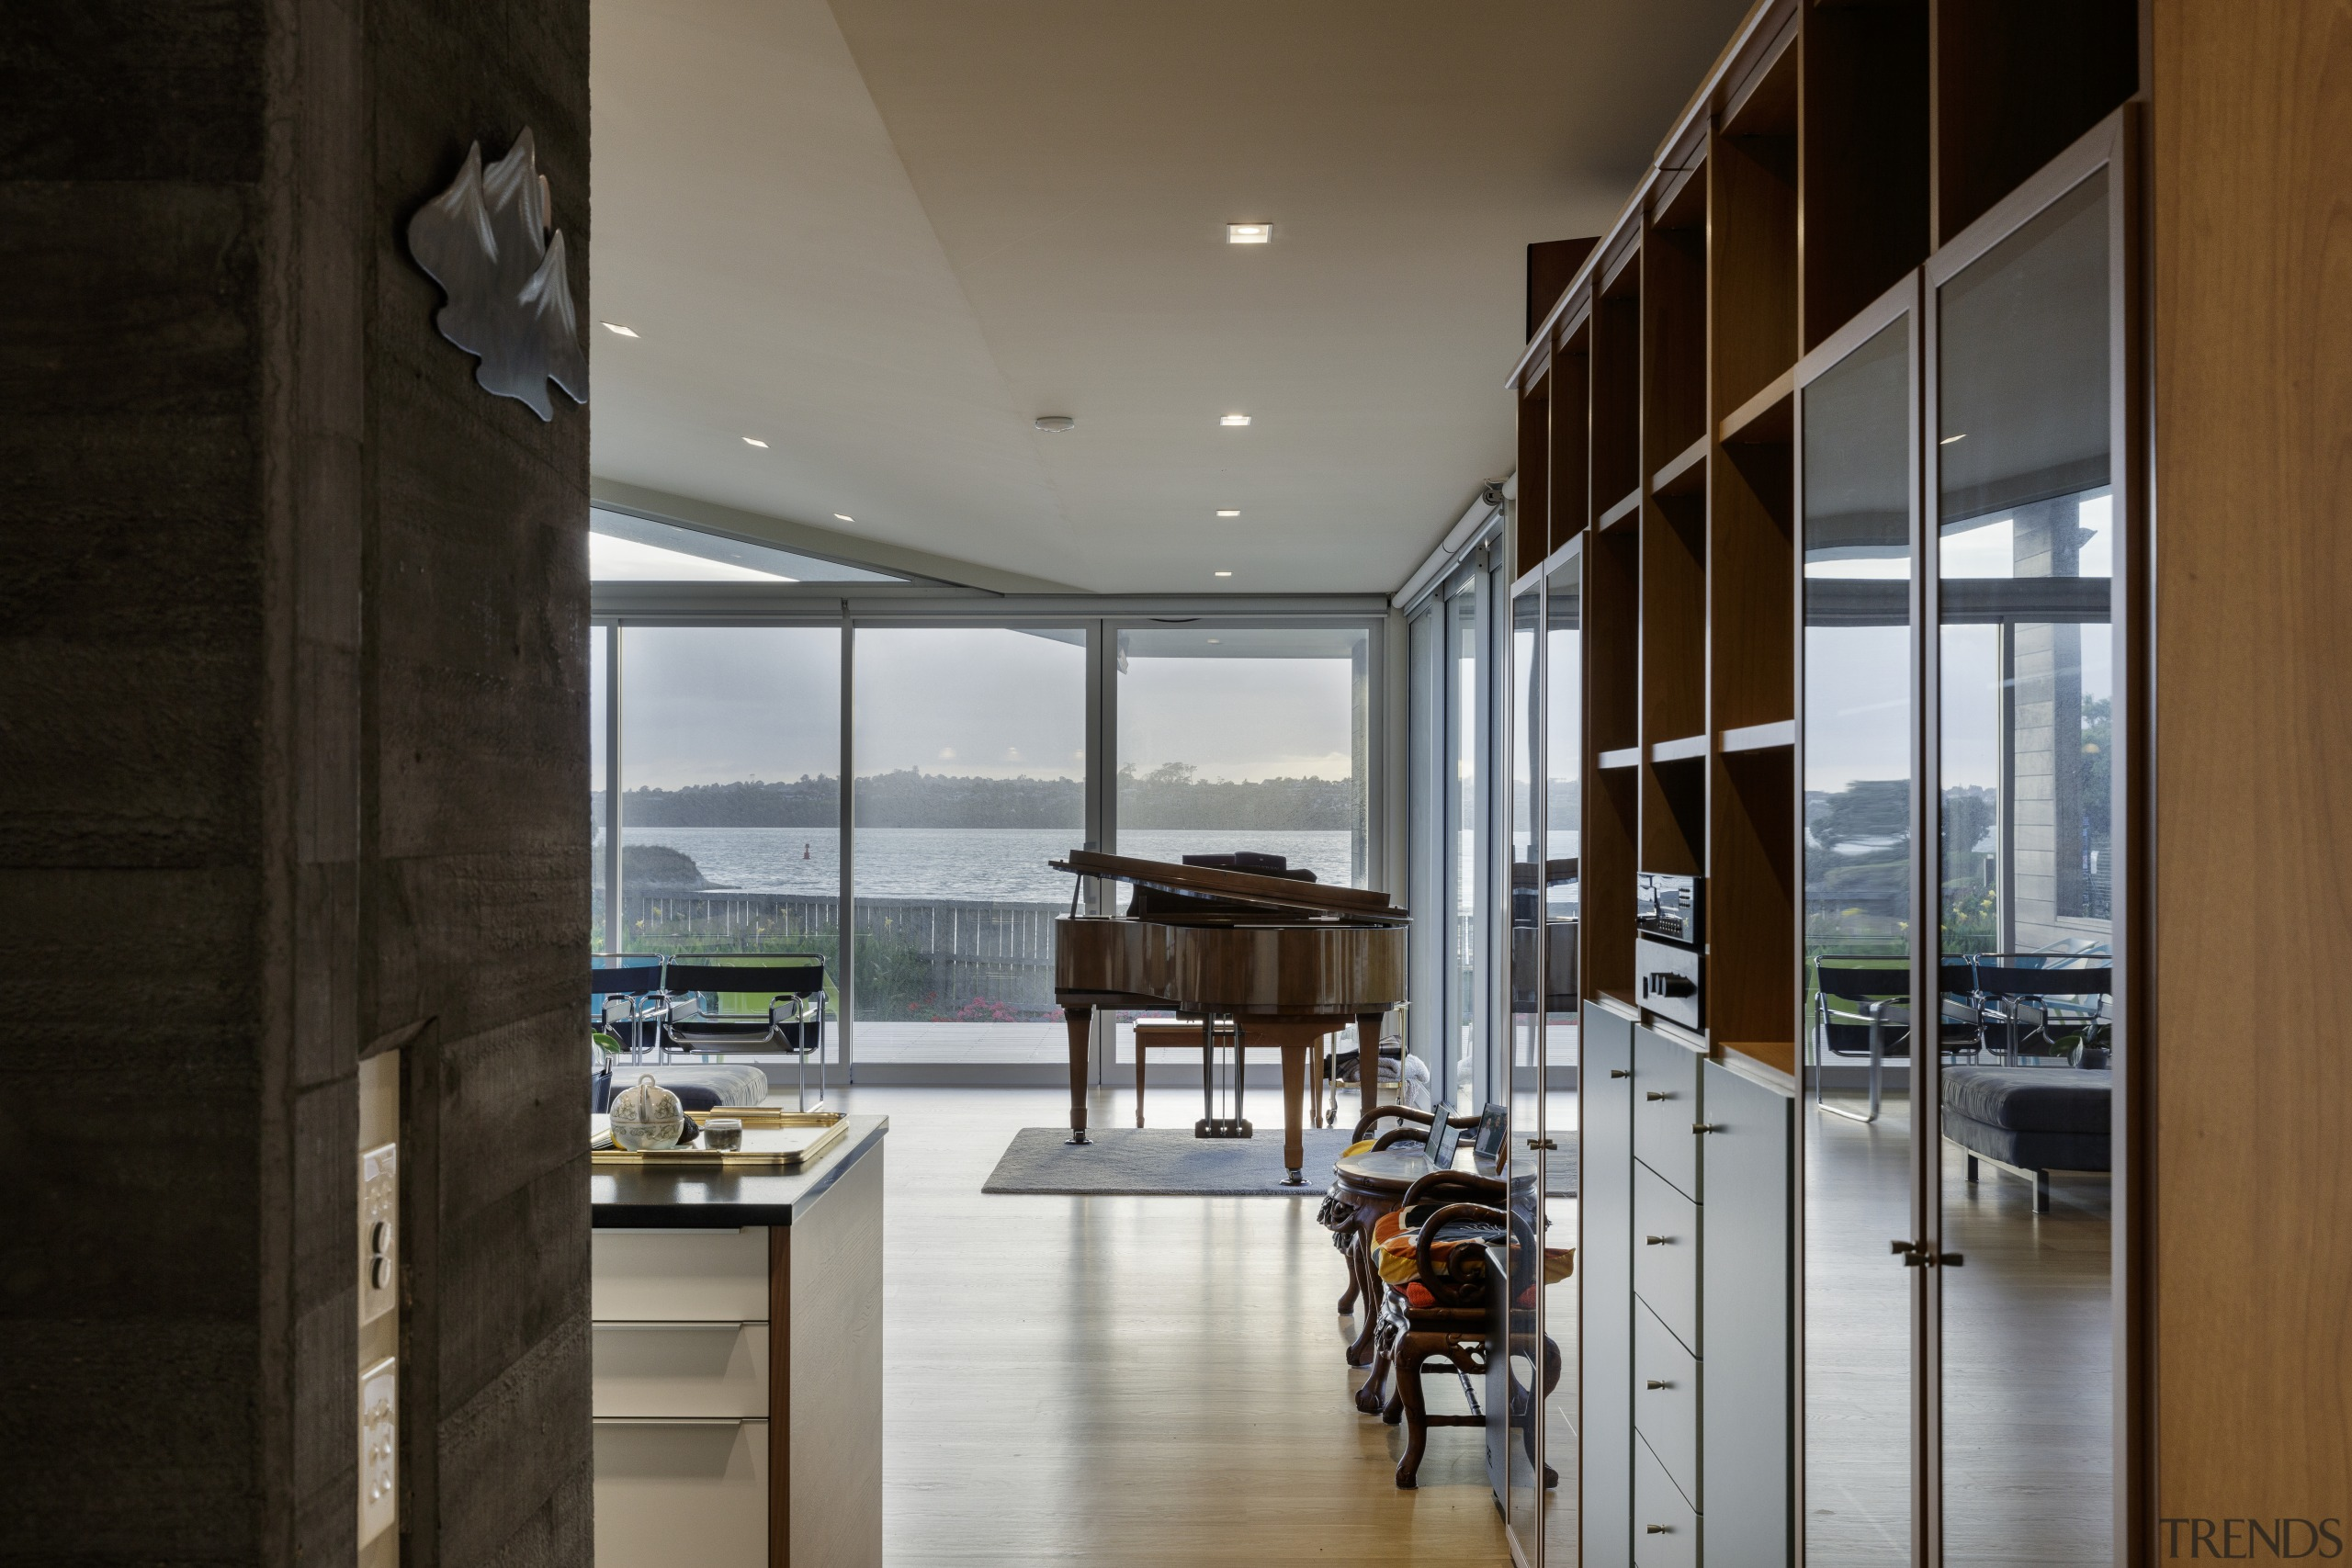 The distinctive, individual house responds sensitively to the apartment, architecture, building, ceiling, daylighting, door, floor, flooring, furniture, glass, home, house, interior design, loft, property, real estate, room, table, window, black, gray